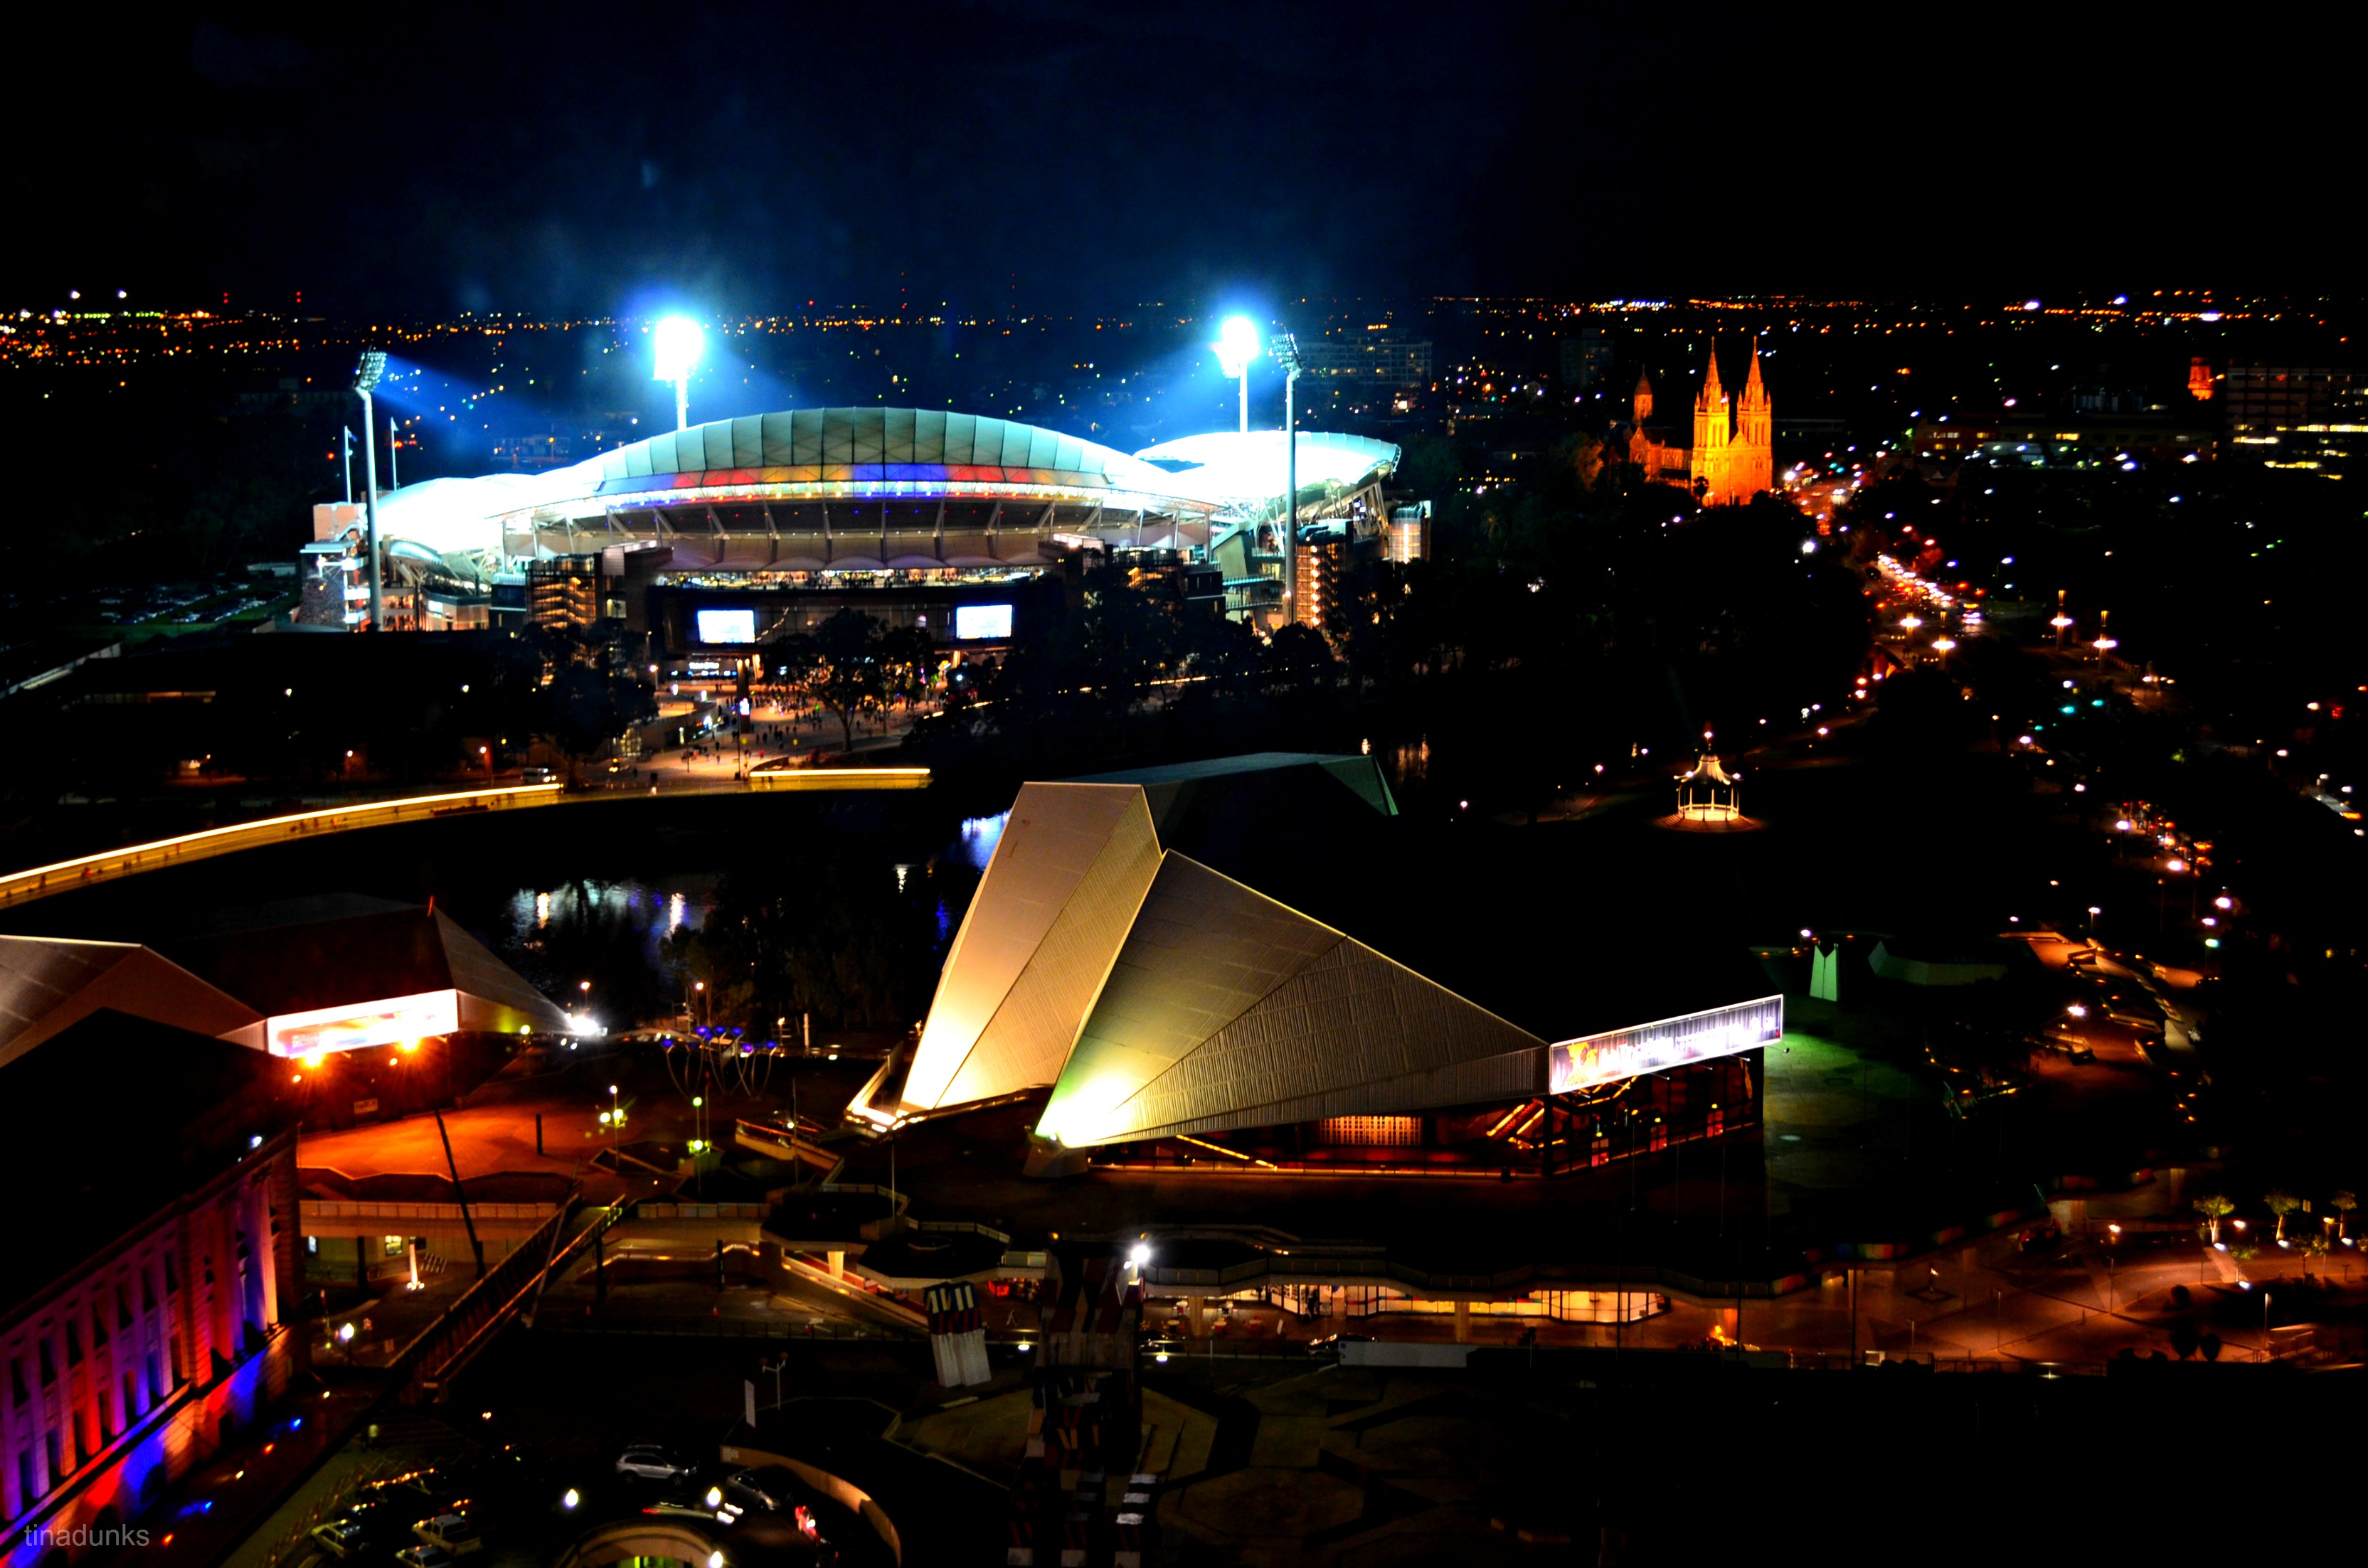 Adelaide s new nightscape tina dunks perceptions